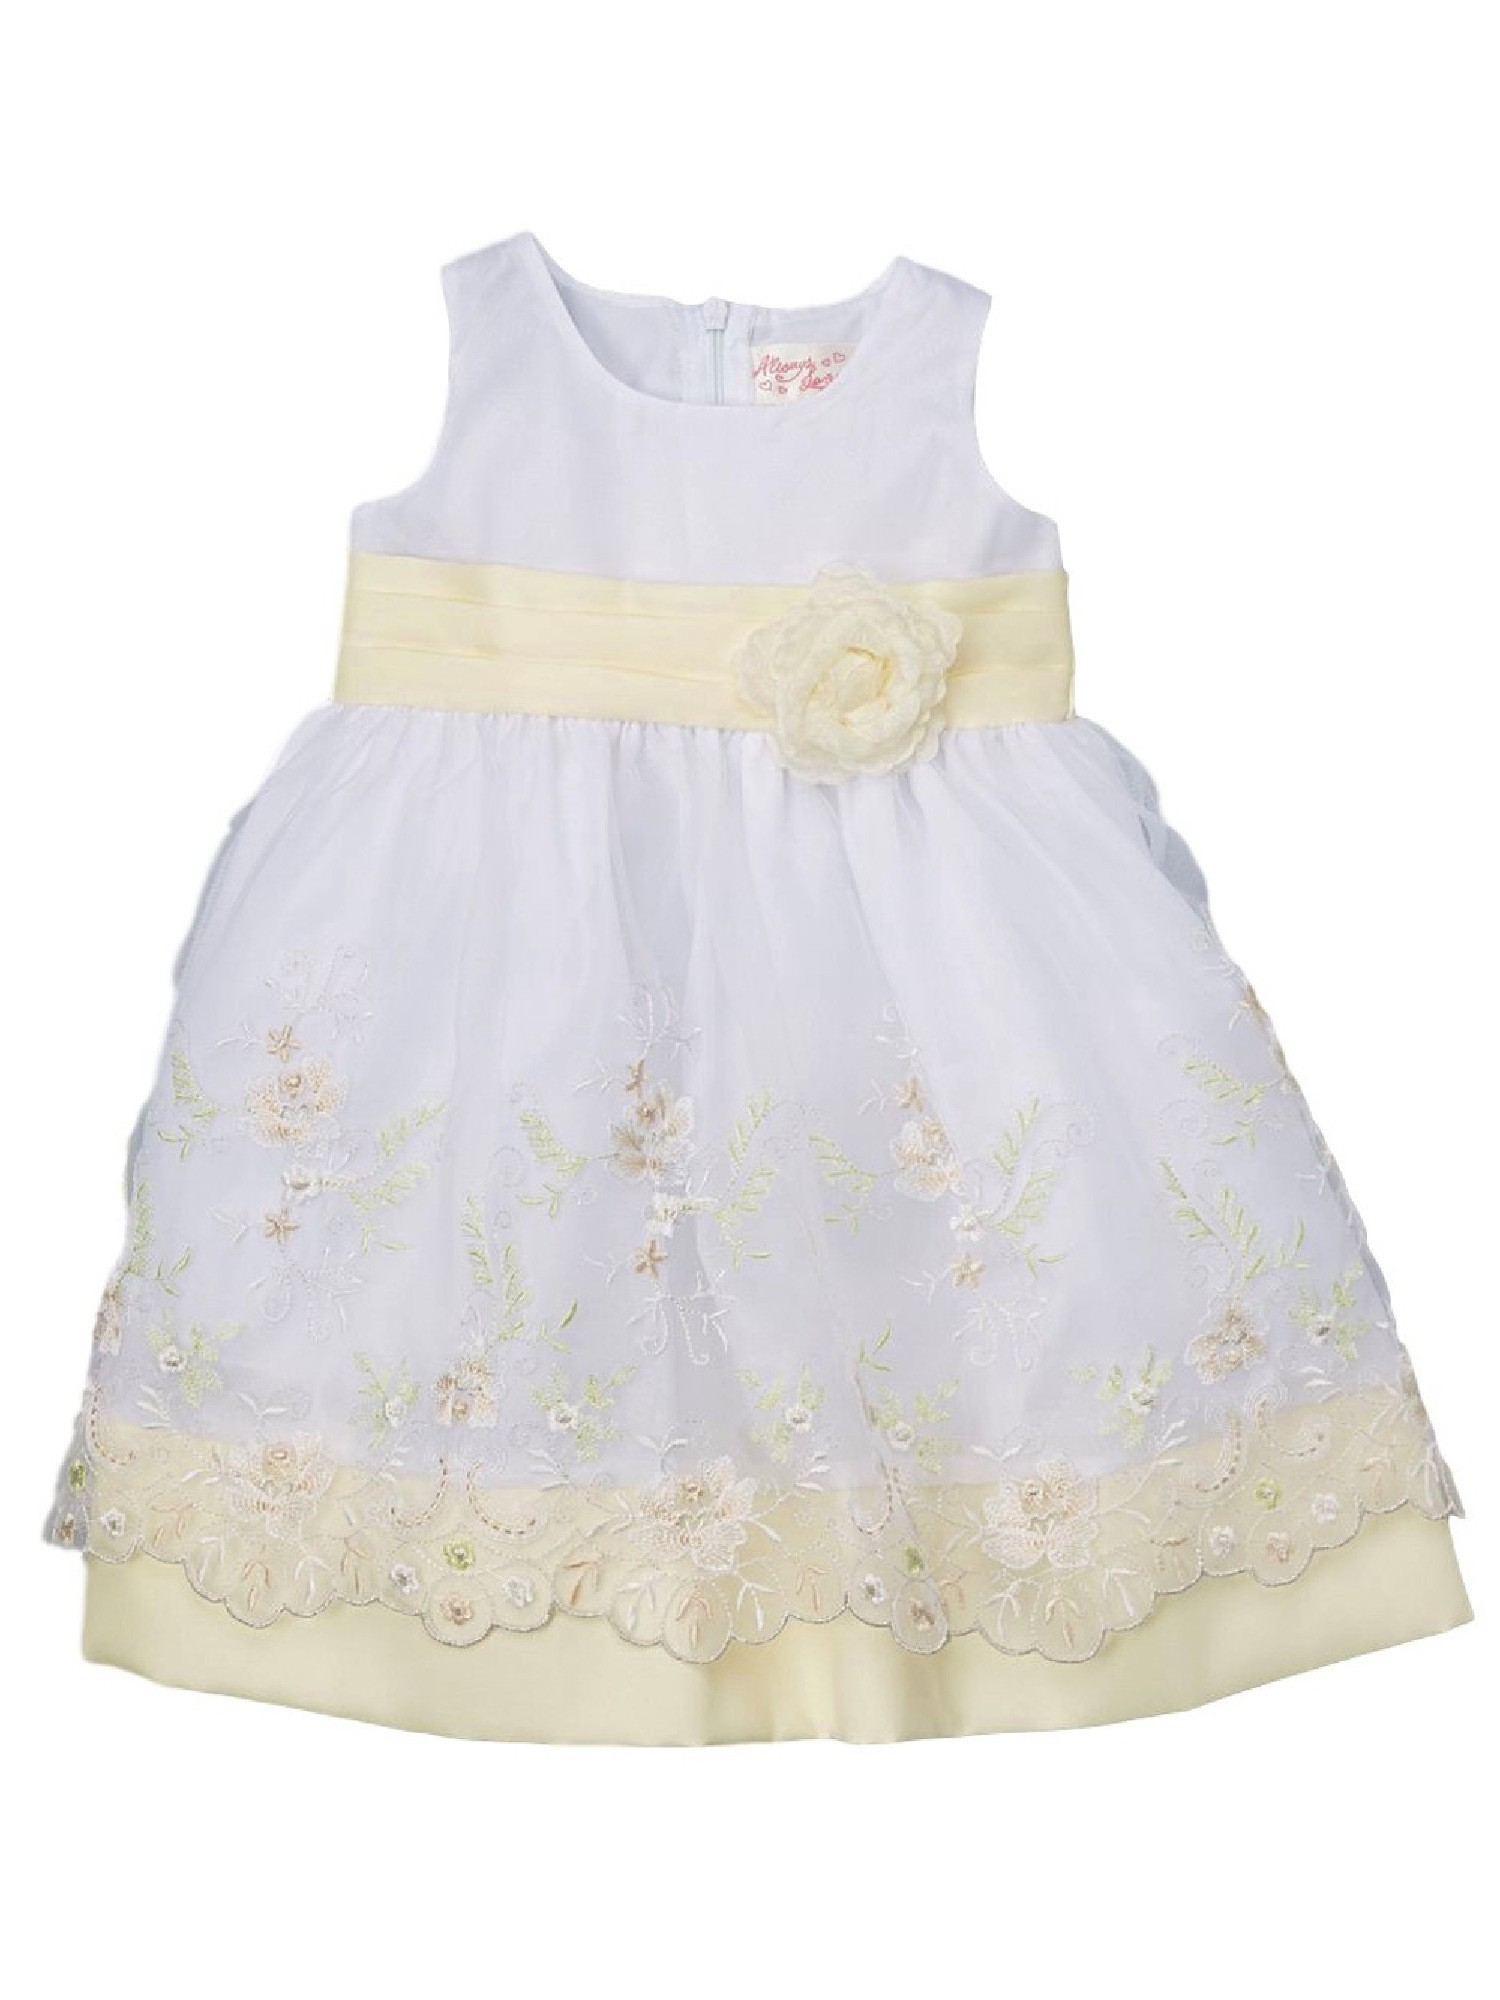 Piece Unik Unik Big Girls Ivory Floral Embroidered Sash Easter Junior Bridesmaid Dress 8 10